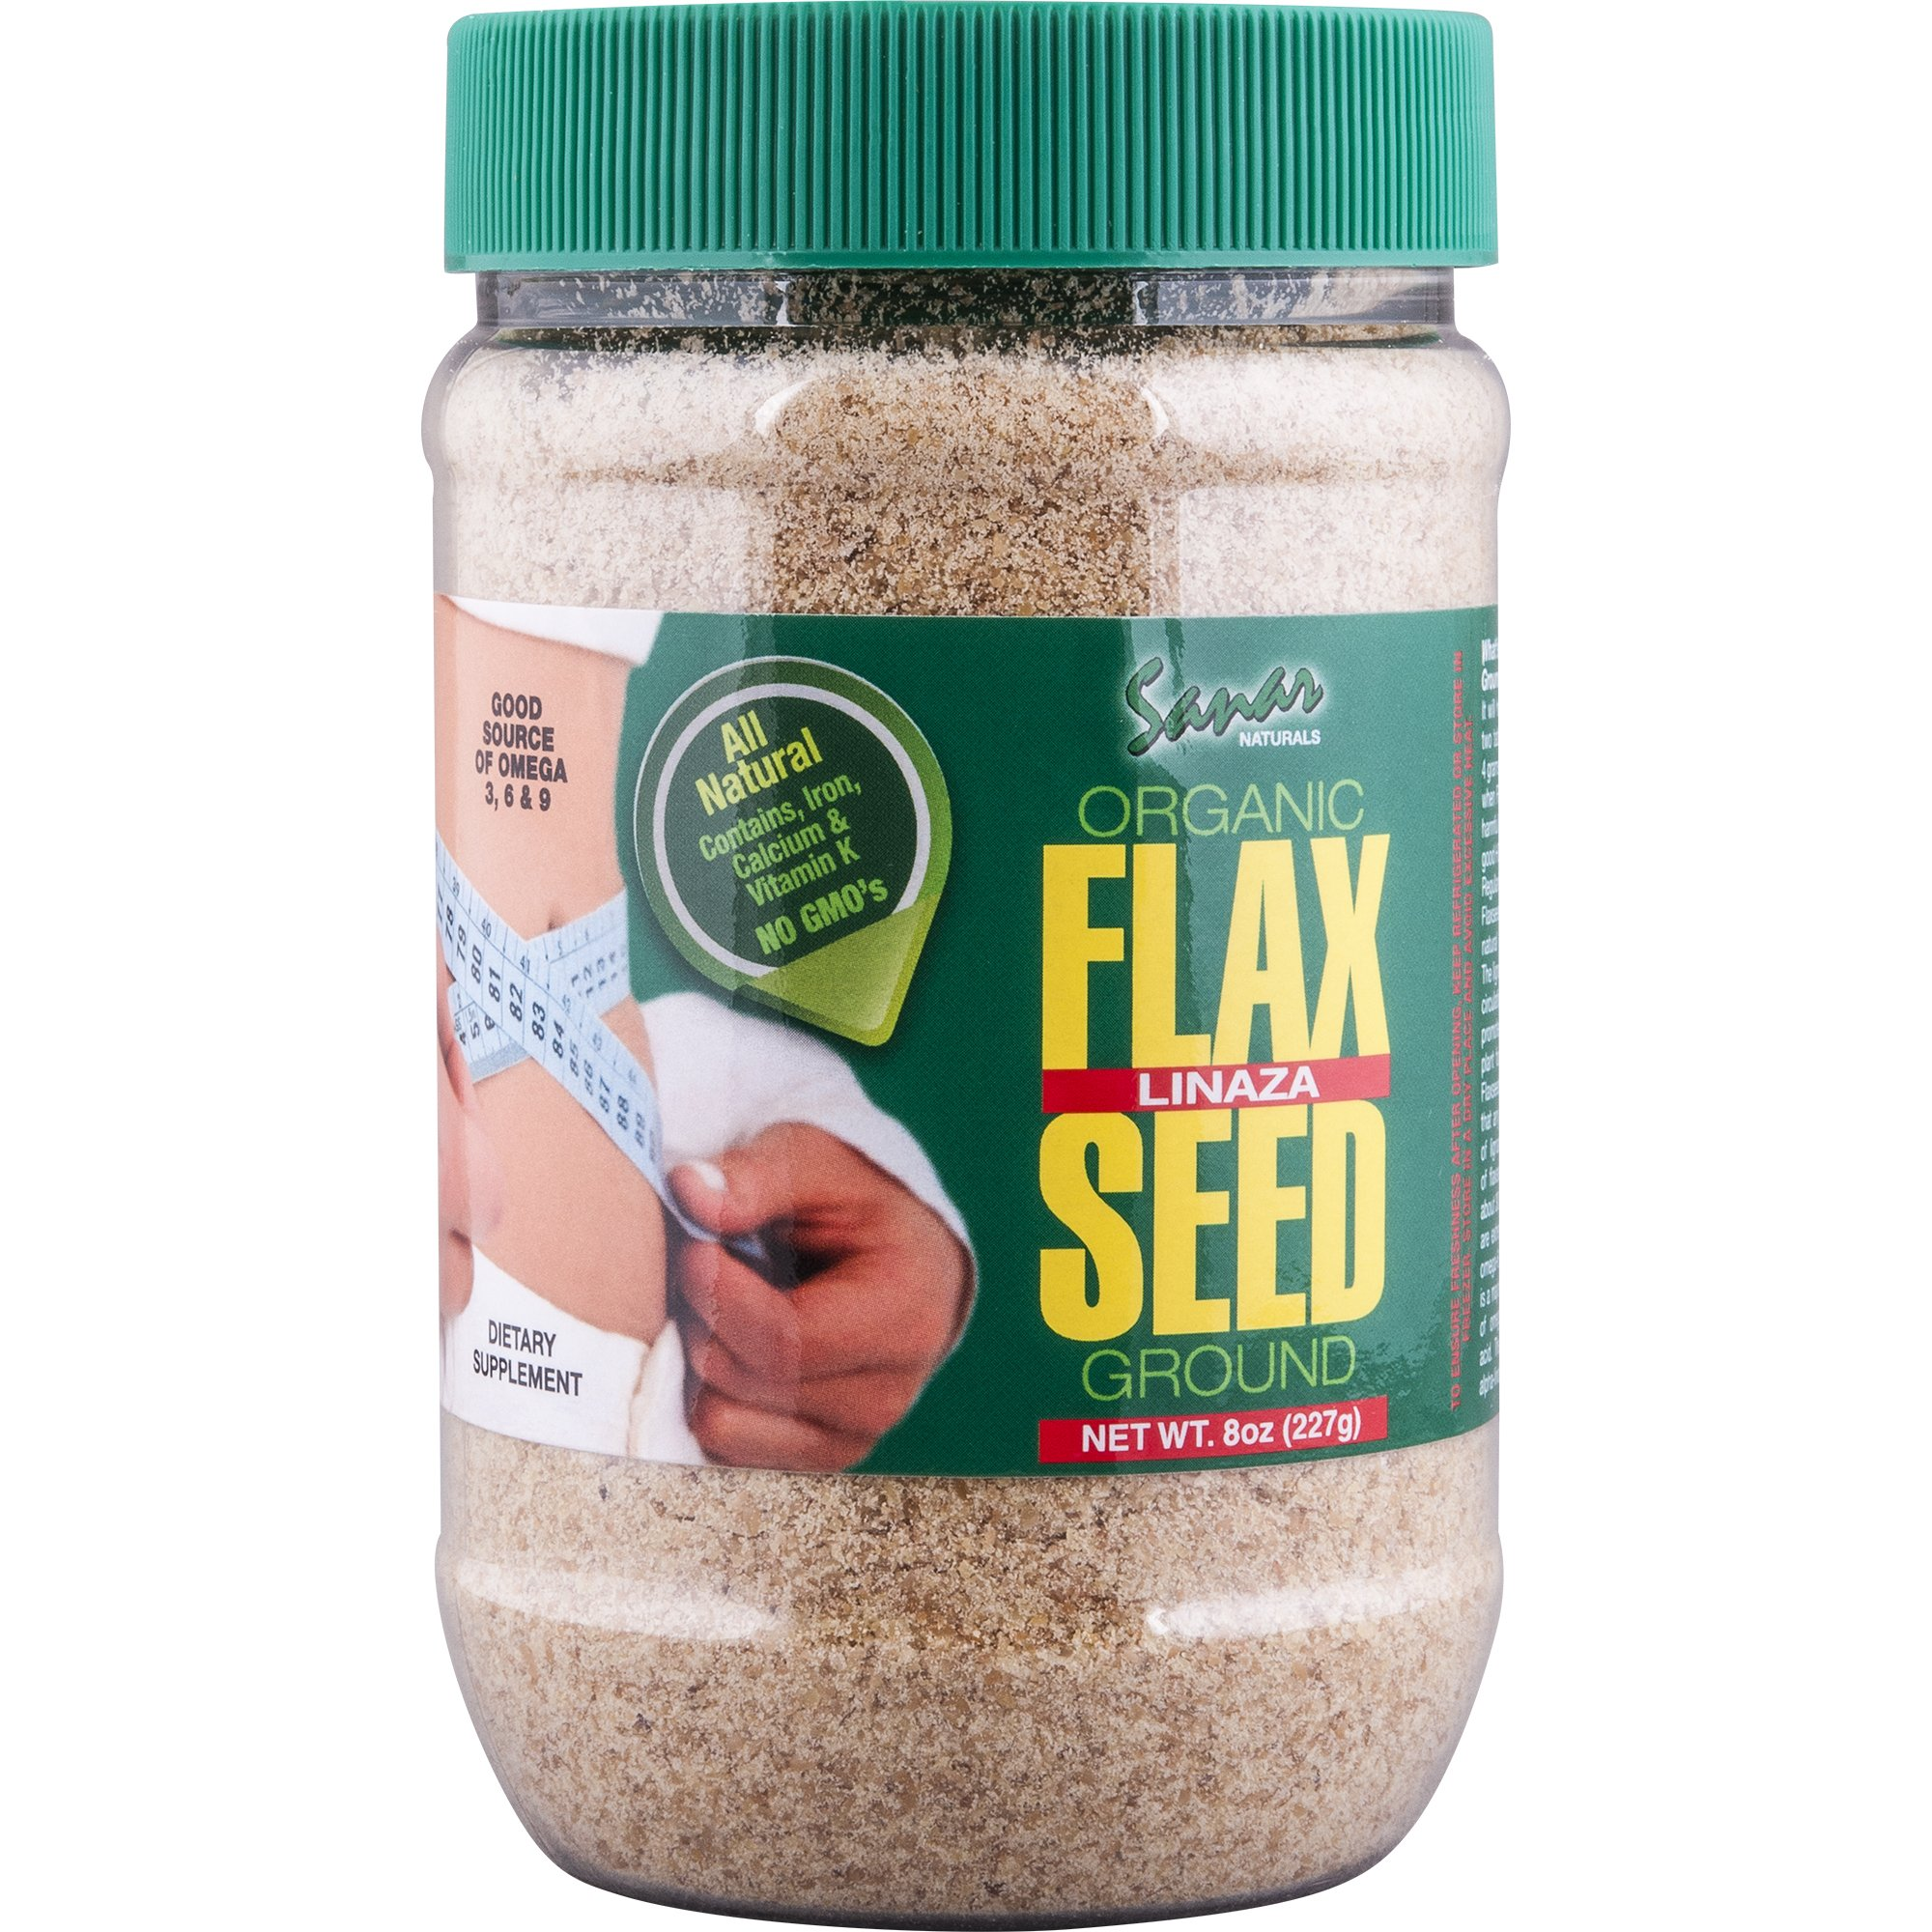 Sanar Naturals Organic Ground Flaxseed, 8 Ounce (3 Pack) - Semilla de Lino Molidas, Linaza, Great Source of Omega 3,6,9, Dietary Fibers, Lignans, and Protein